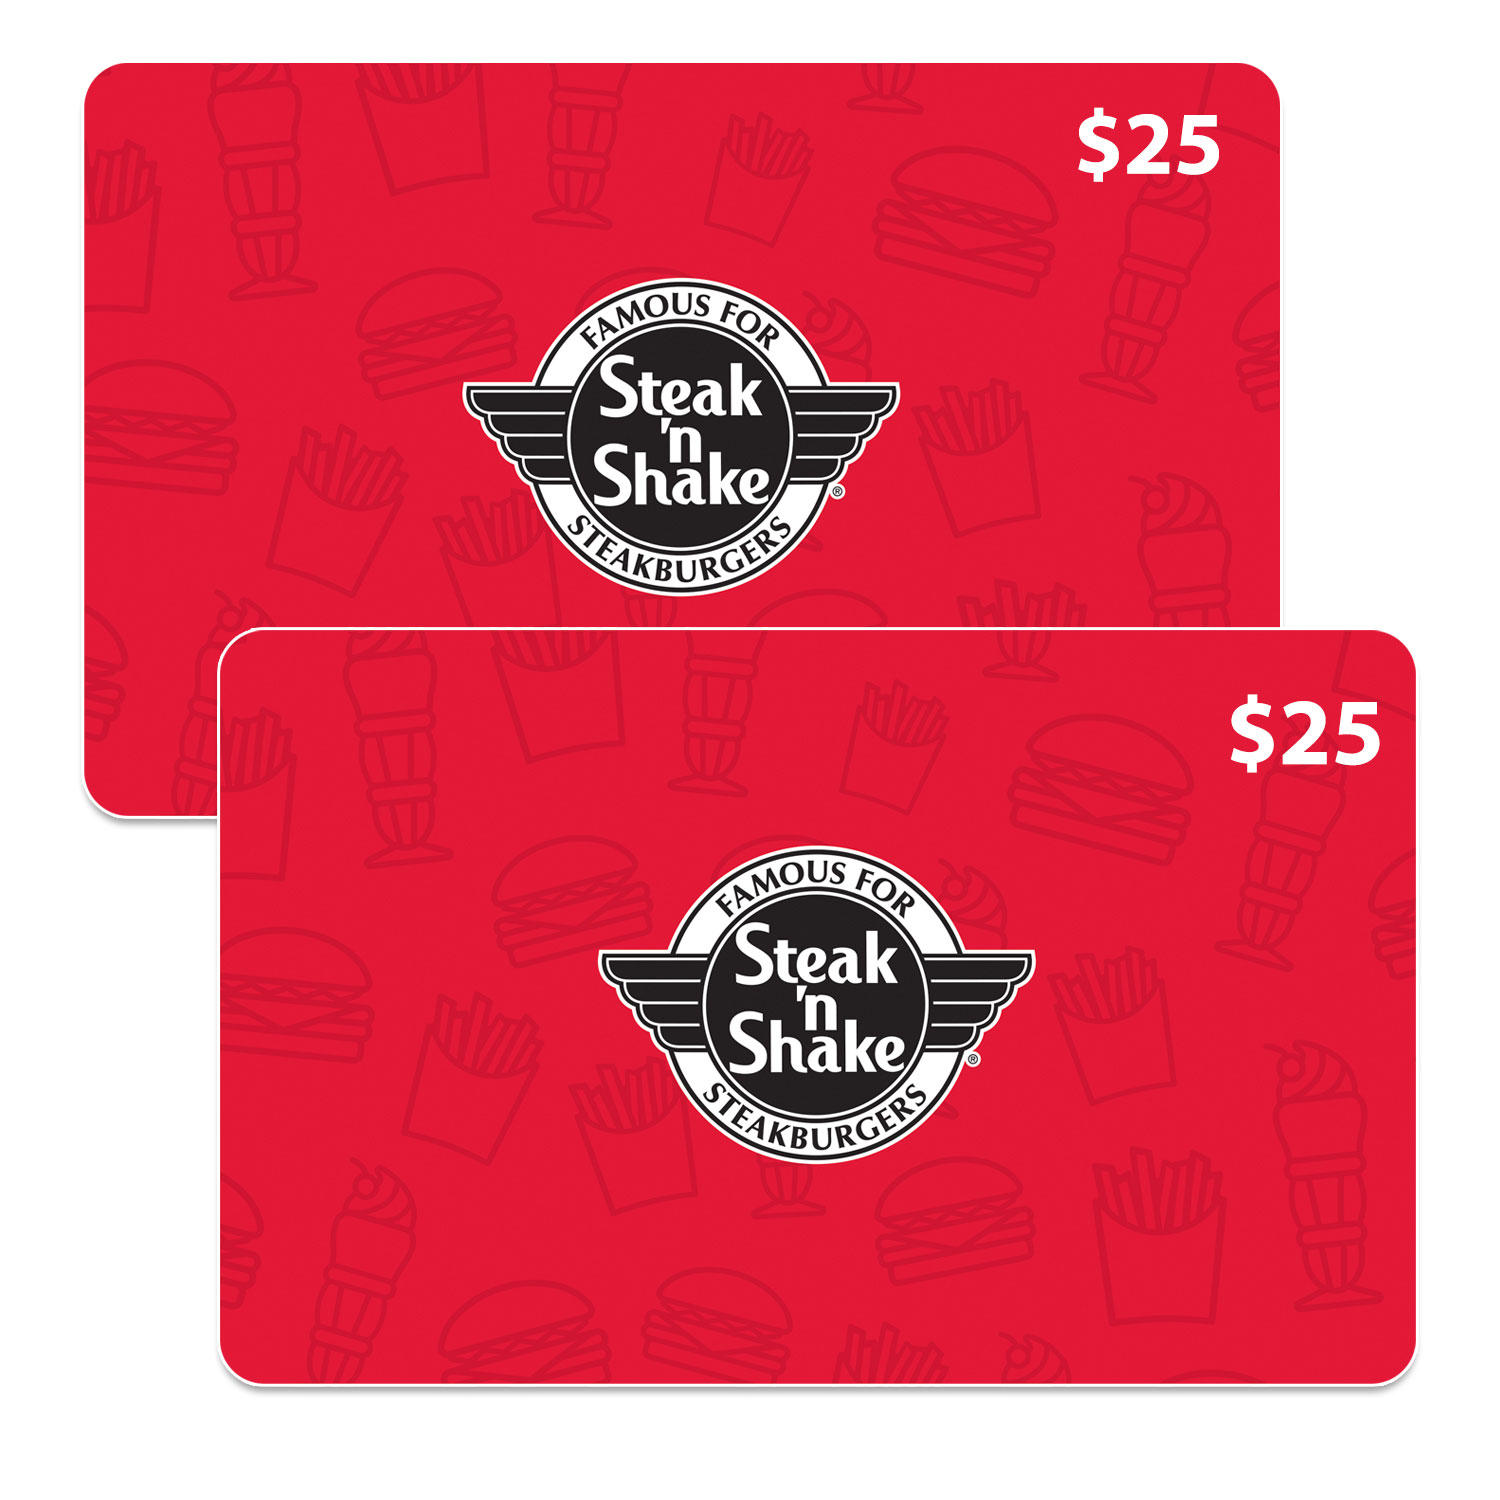 Steak N Shake $50 Value Gift Cards - 2 x $25